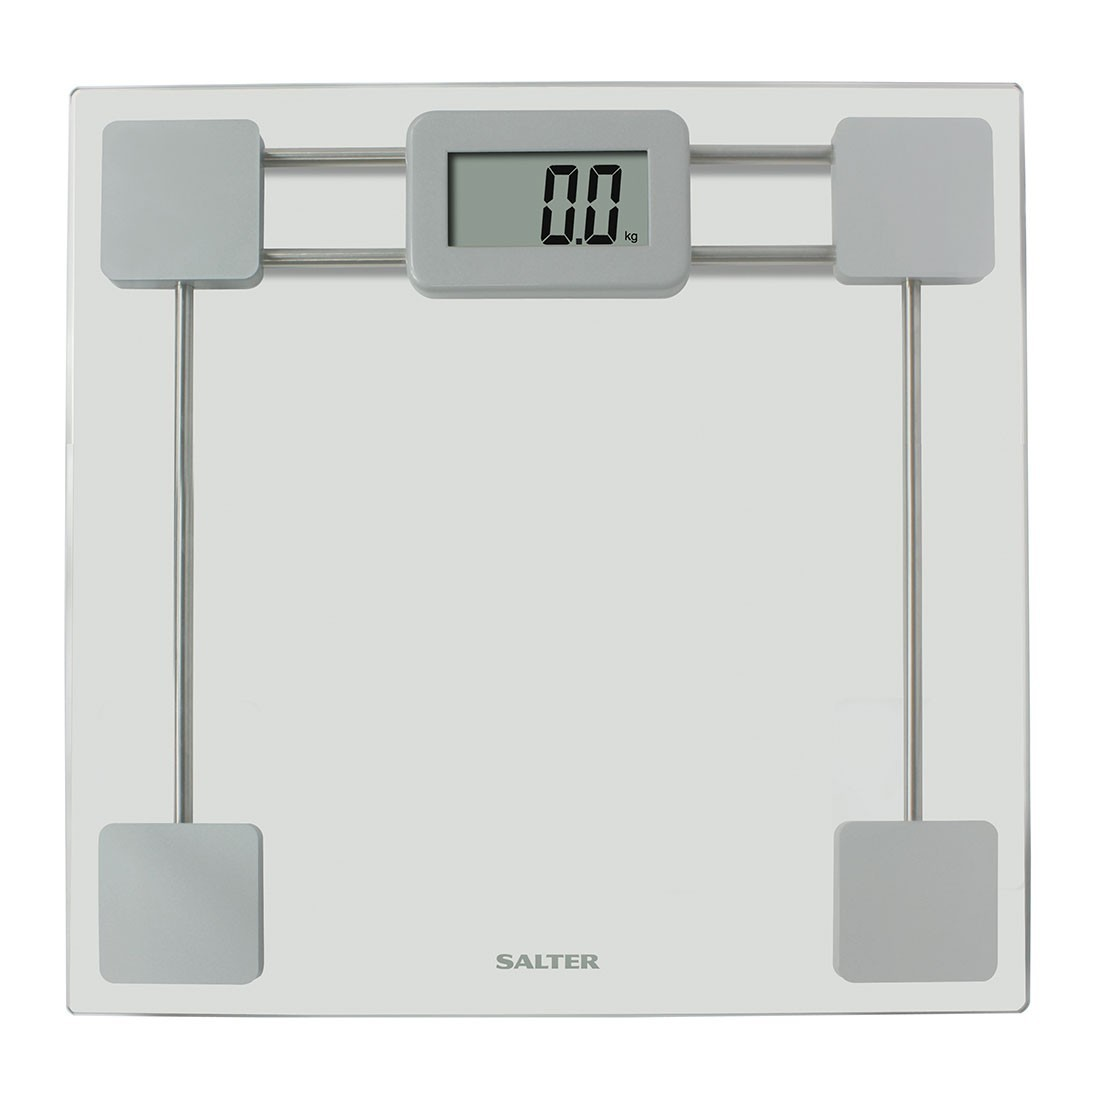 Salter: Glass Electronic Personal Scale image